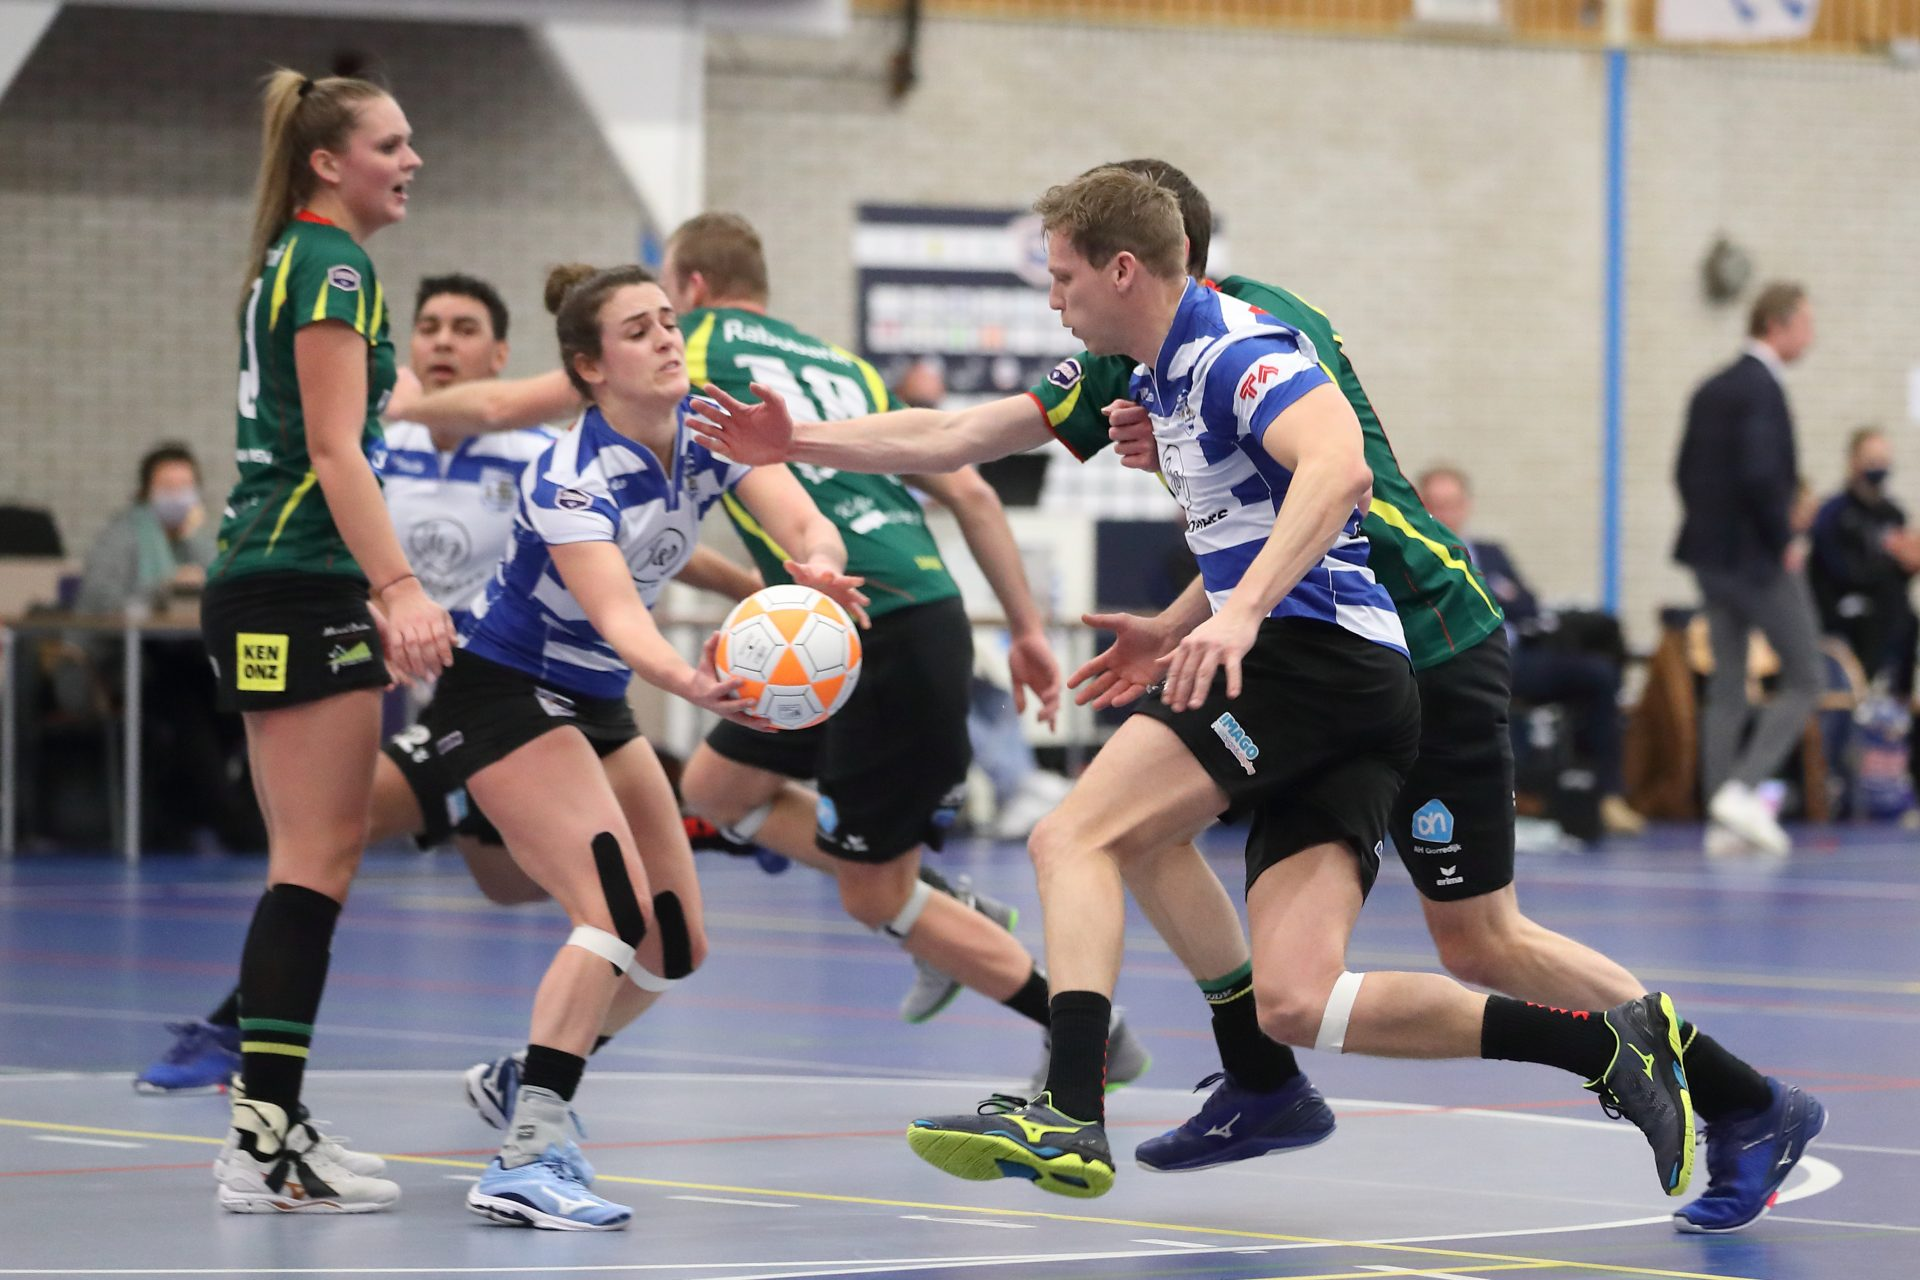 Korfbal League in de media #2